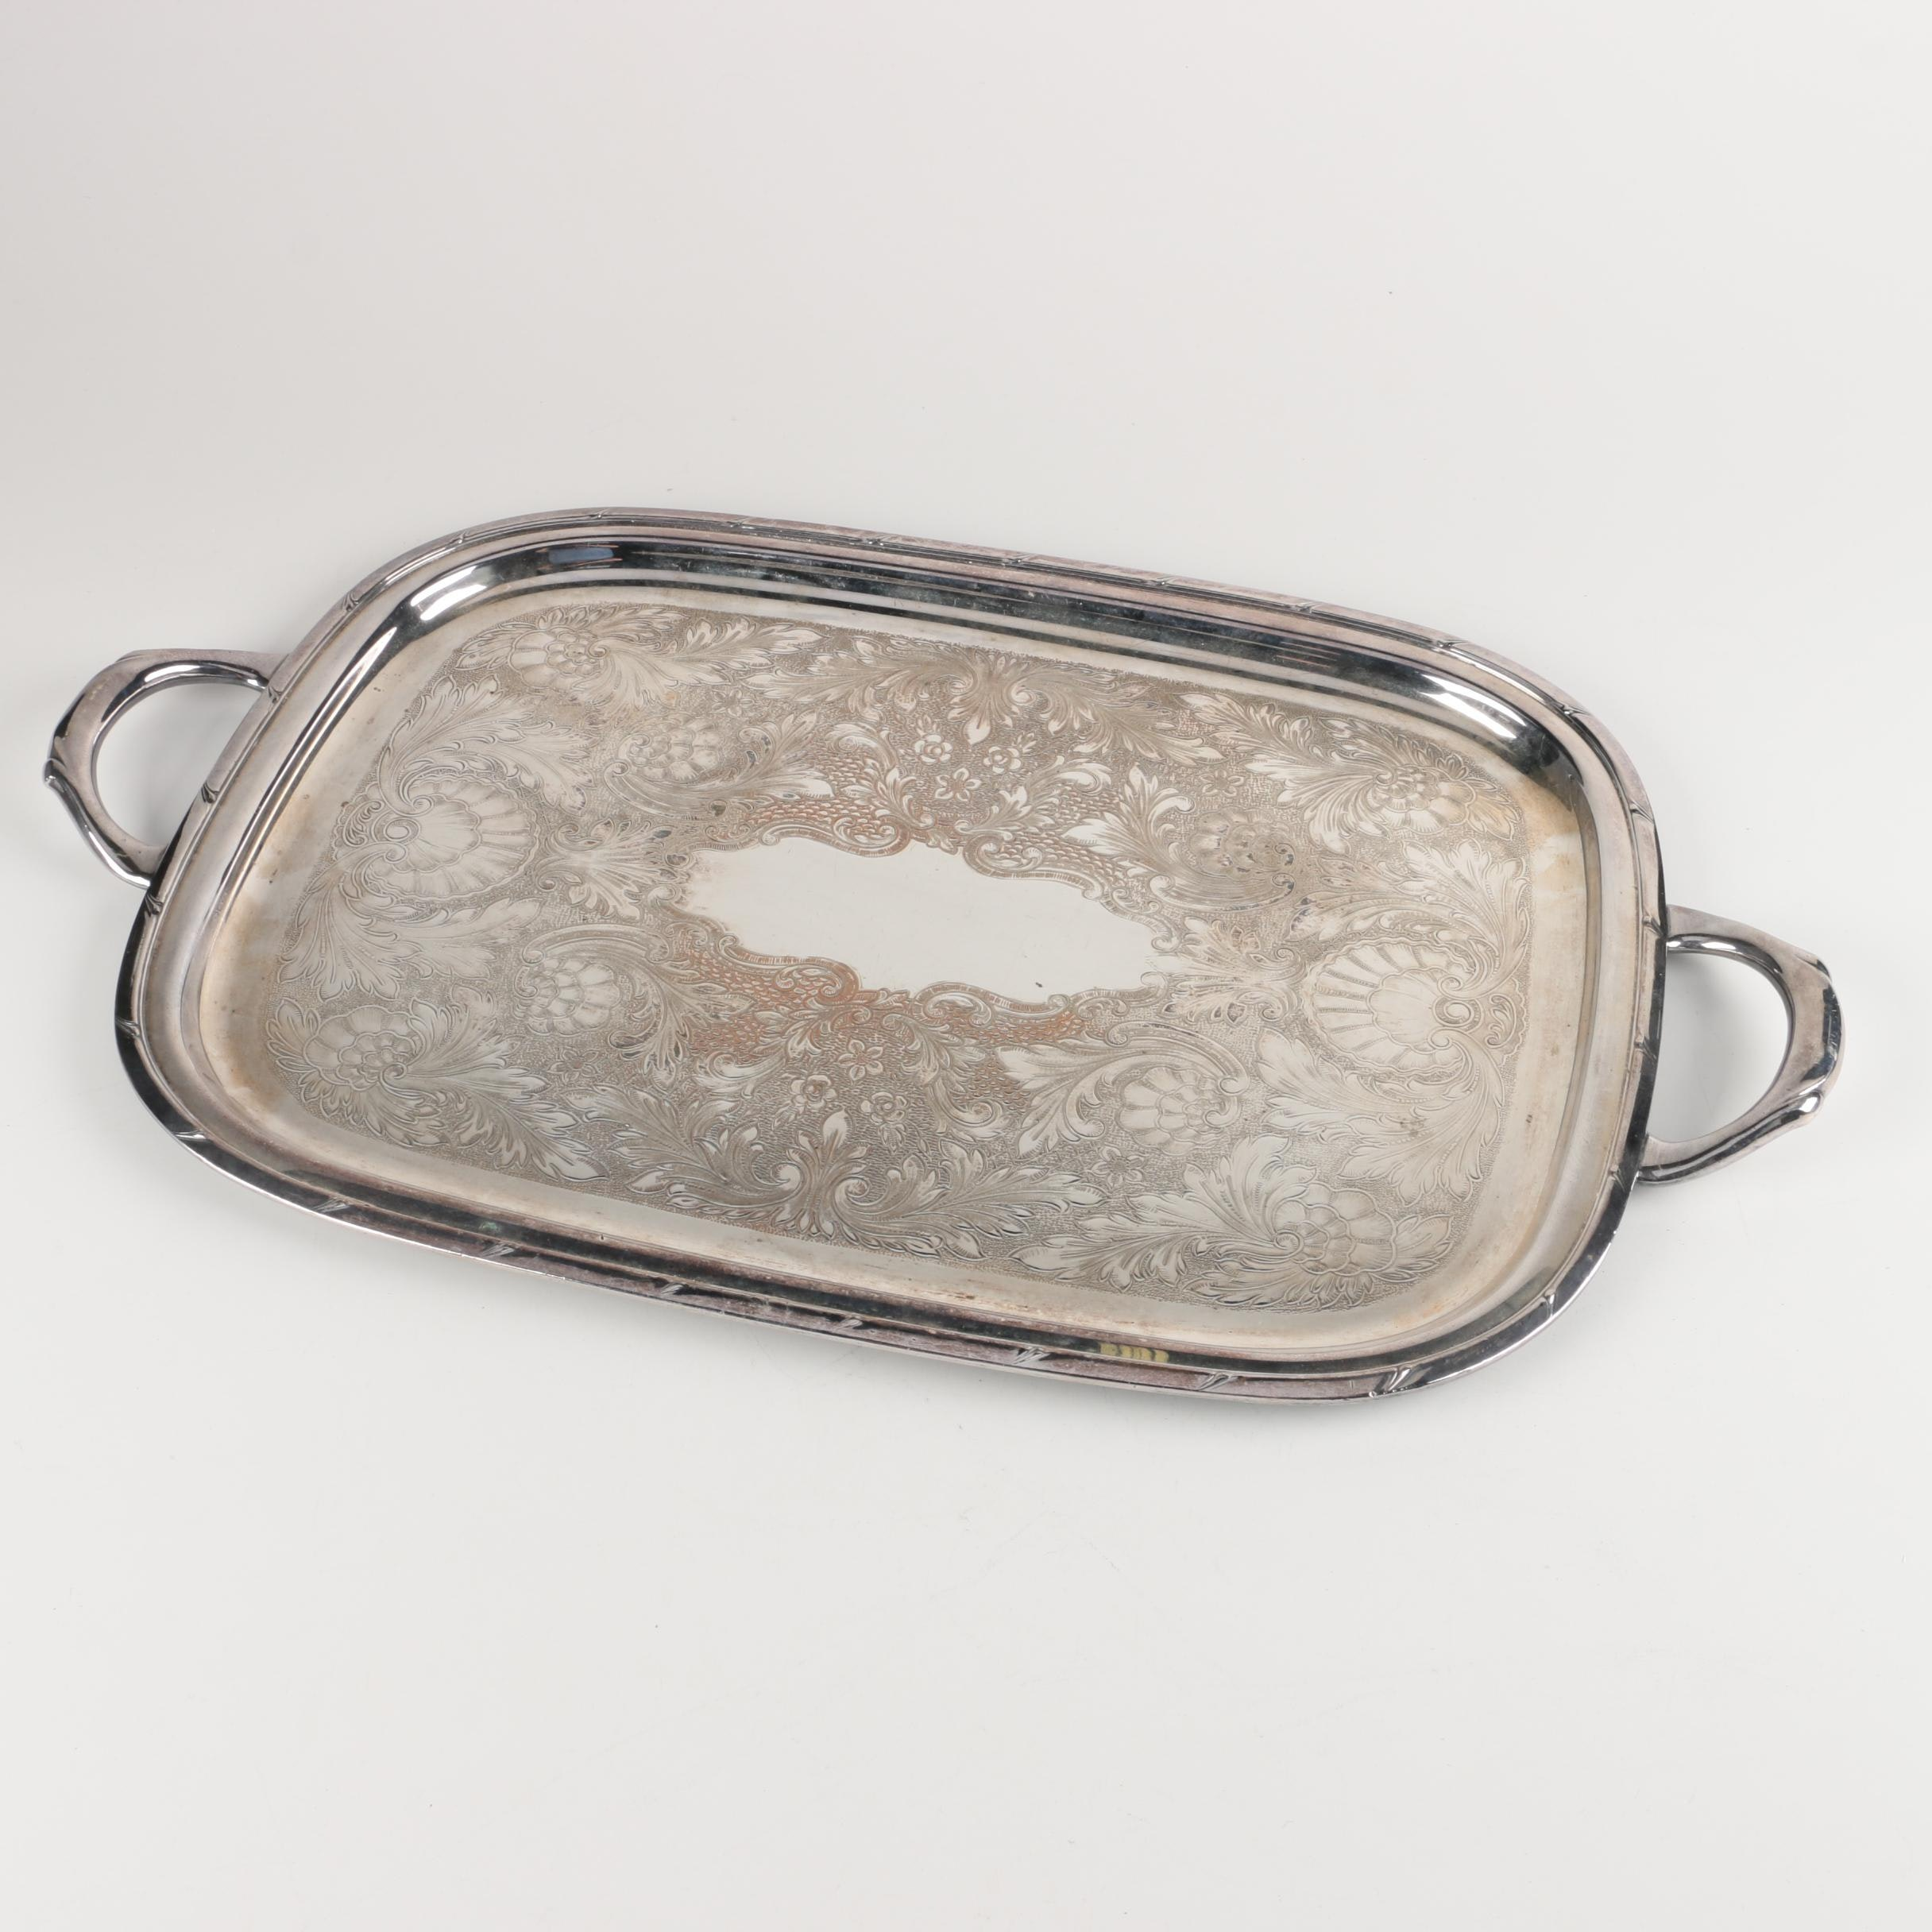 Large Silver Plated Serving Tray